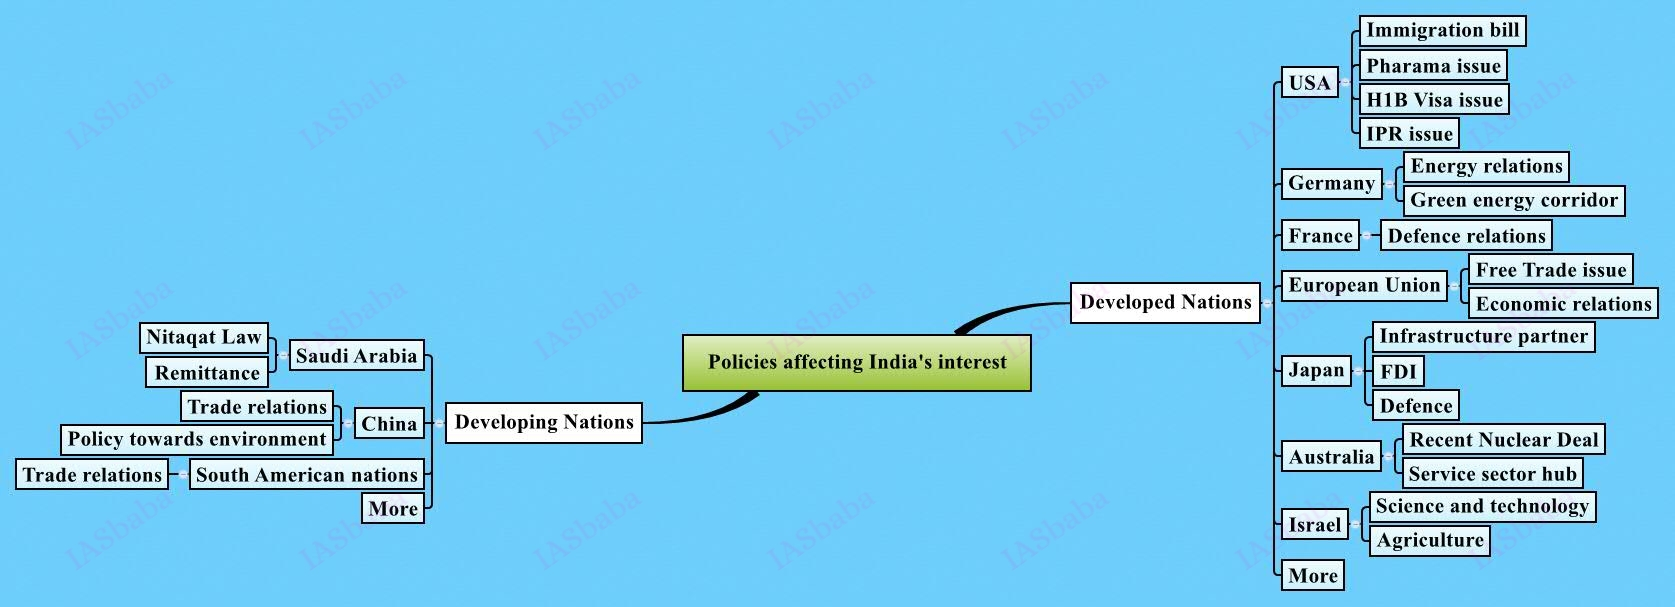 Policies-affecting-Indias-interest